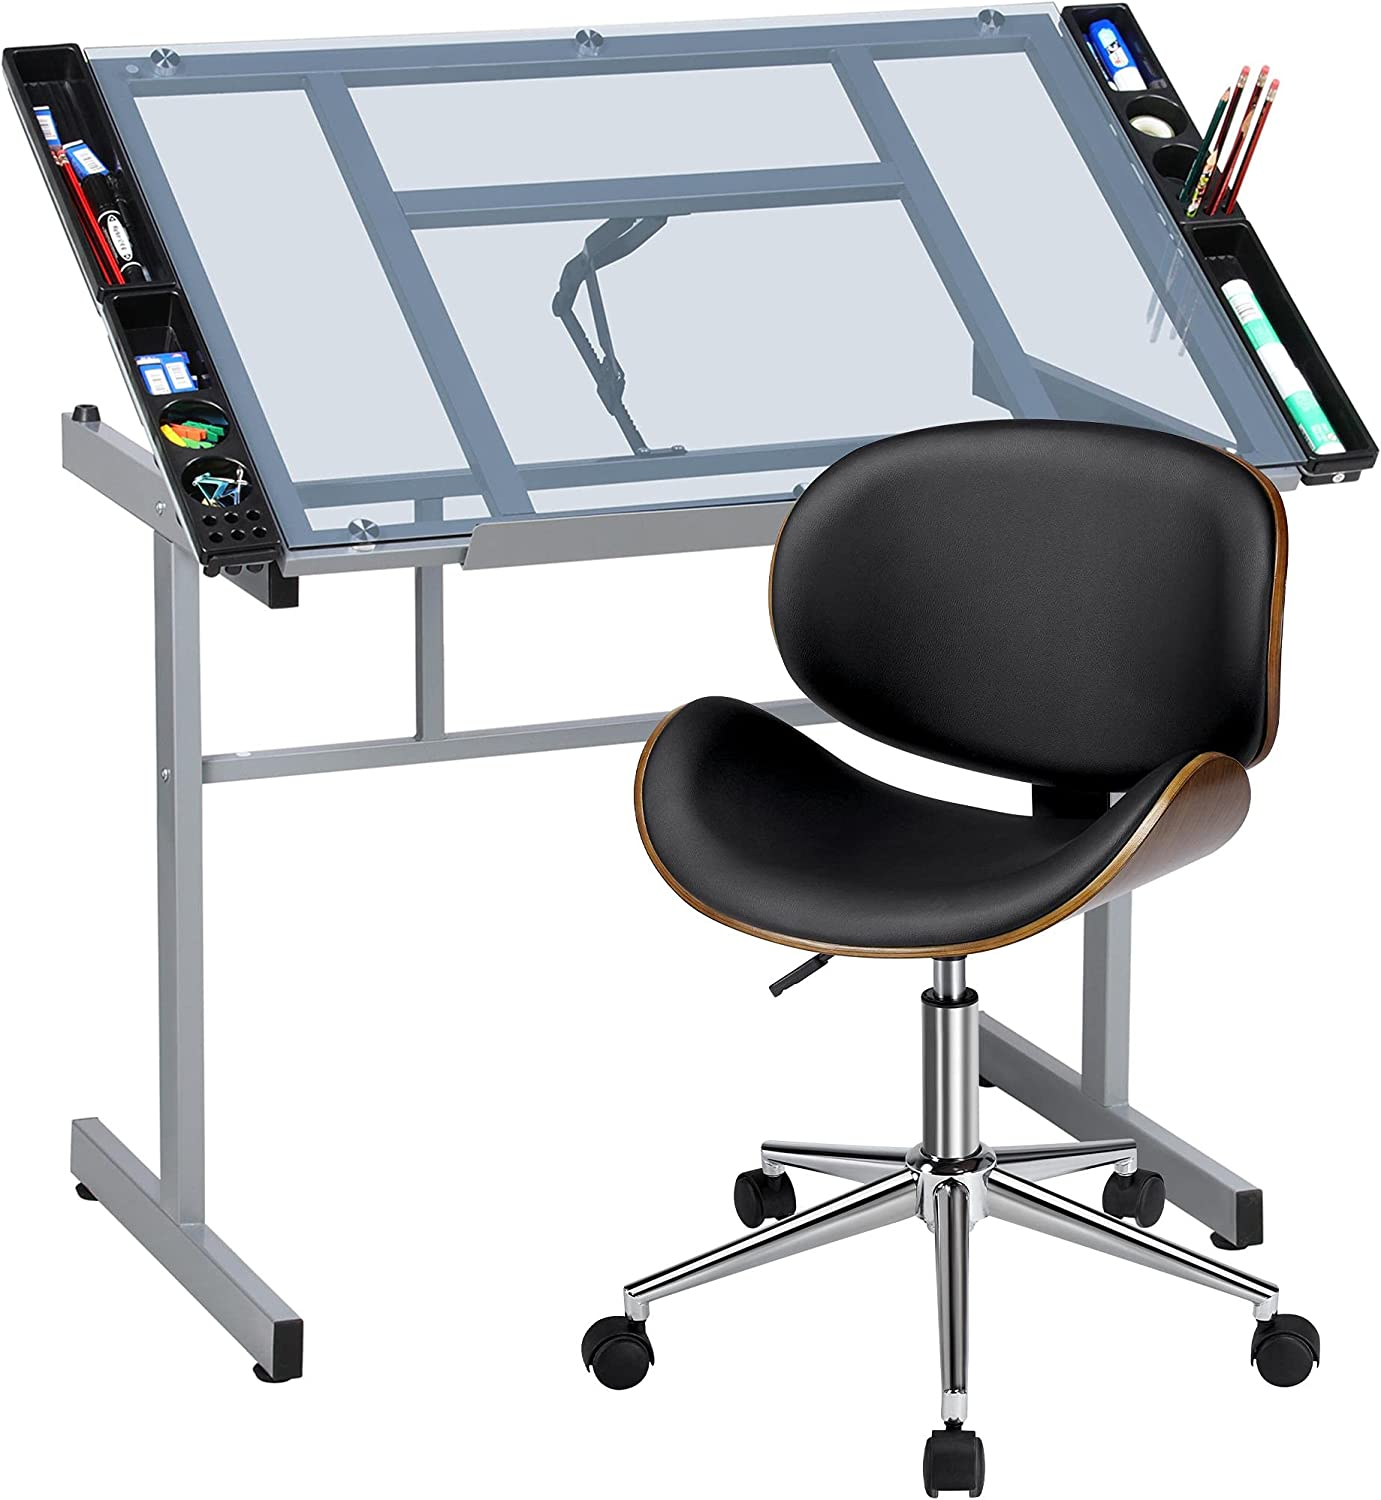 YAHEETECH Drafting Table Drawing Over item handling Tablet store Desk Tilted Artist